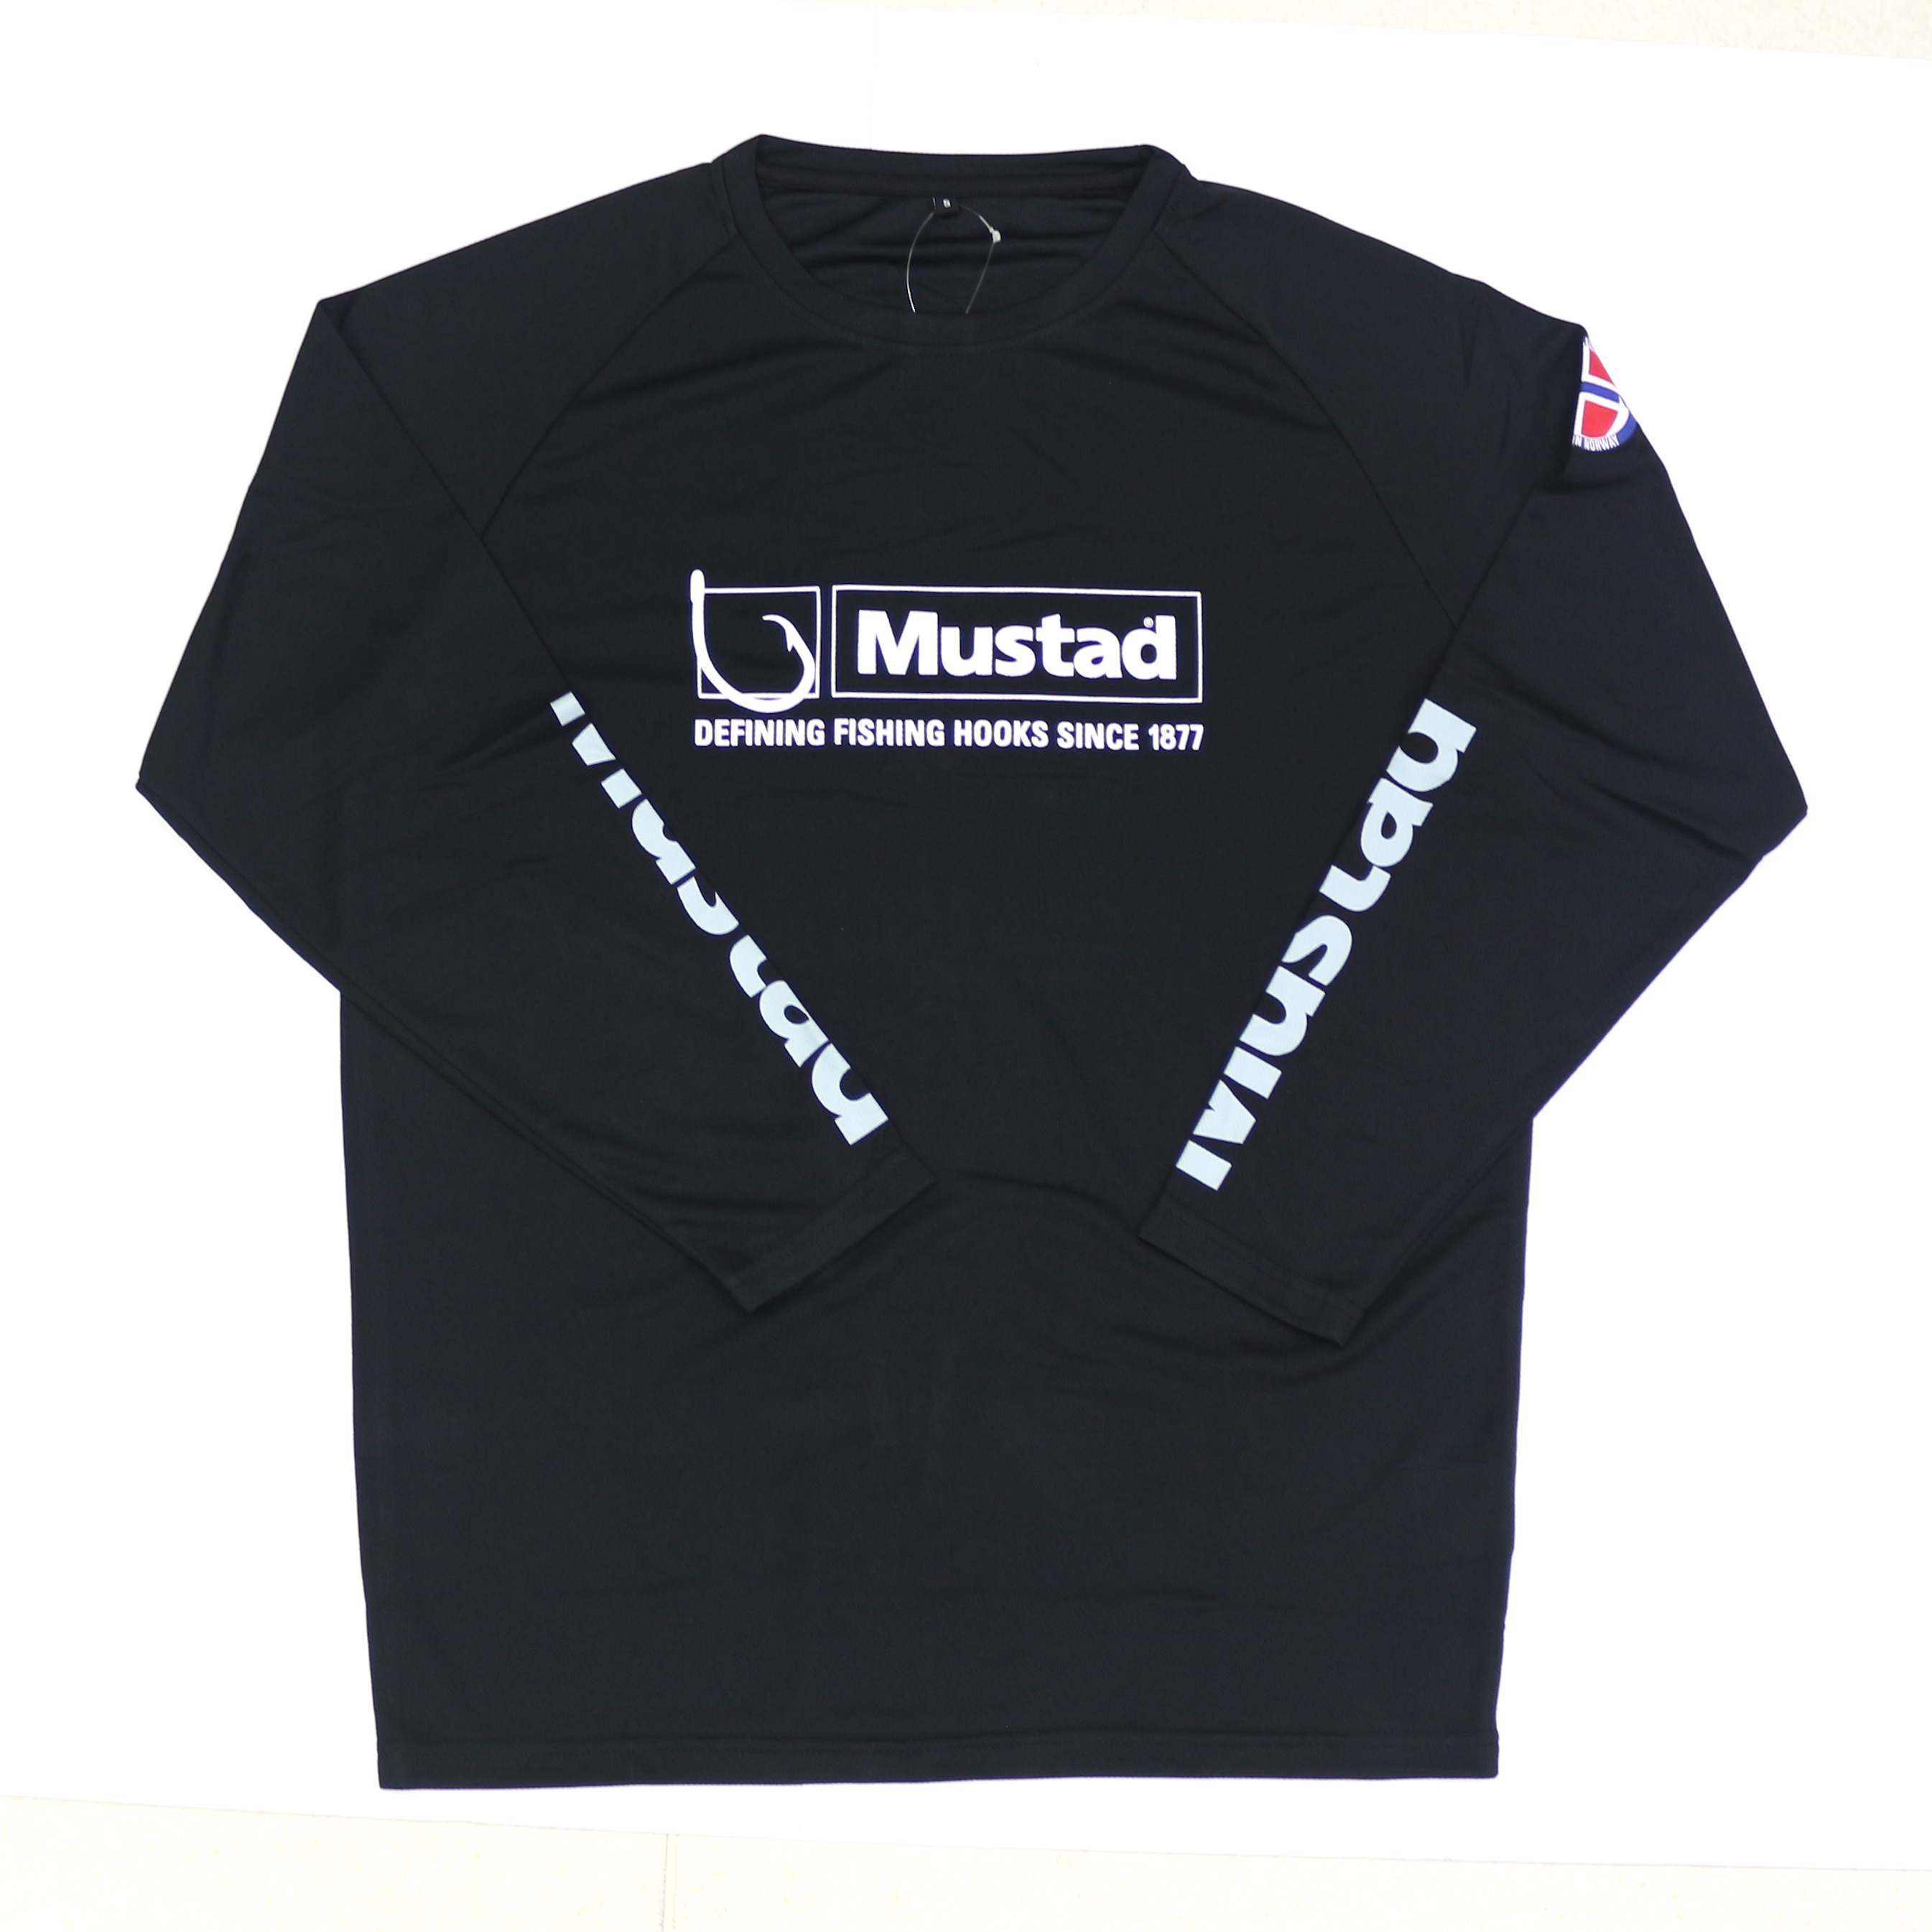 Mustad MCTS01 Long Sleeve Shirt Black Size S (4327)